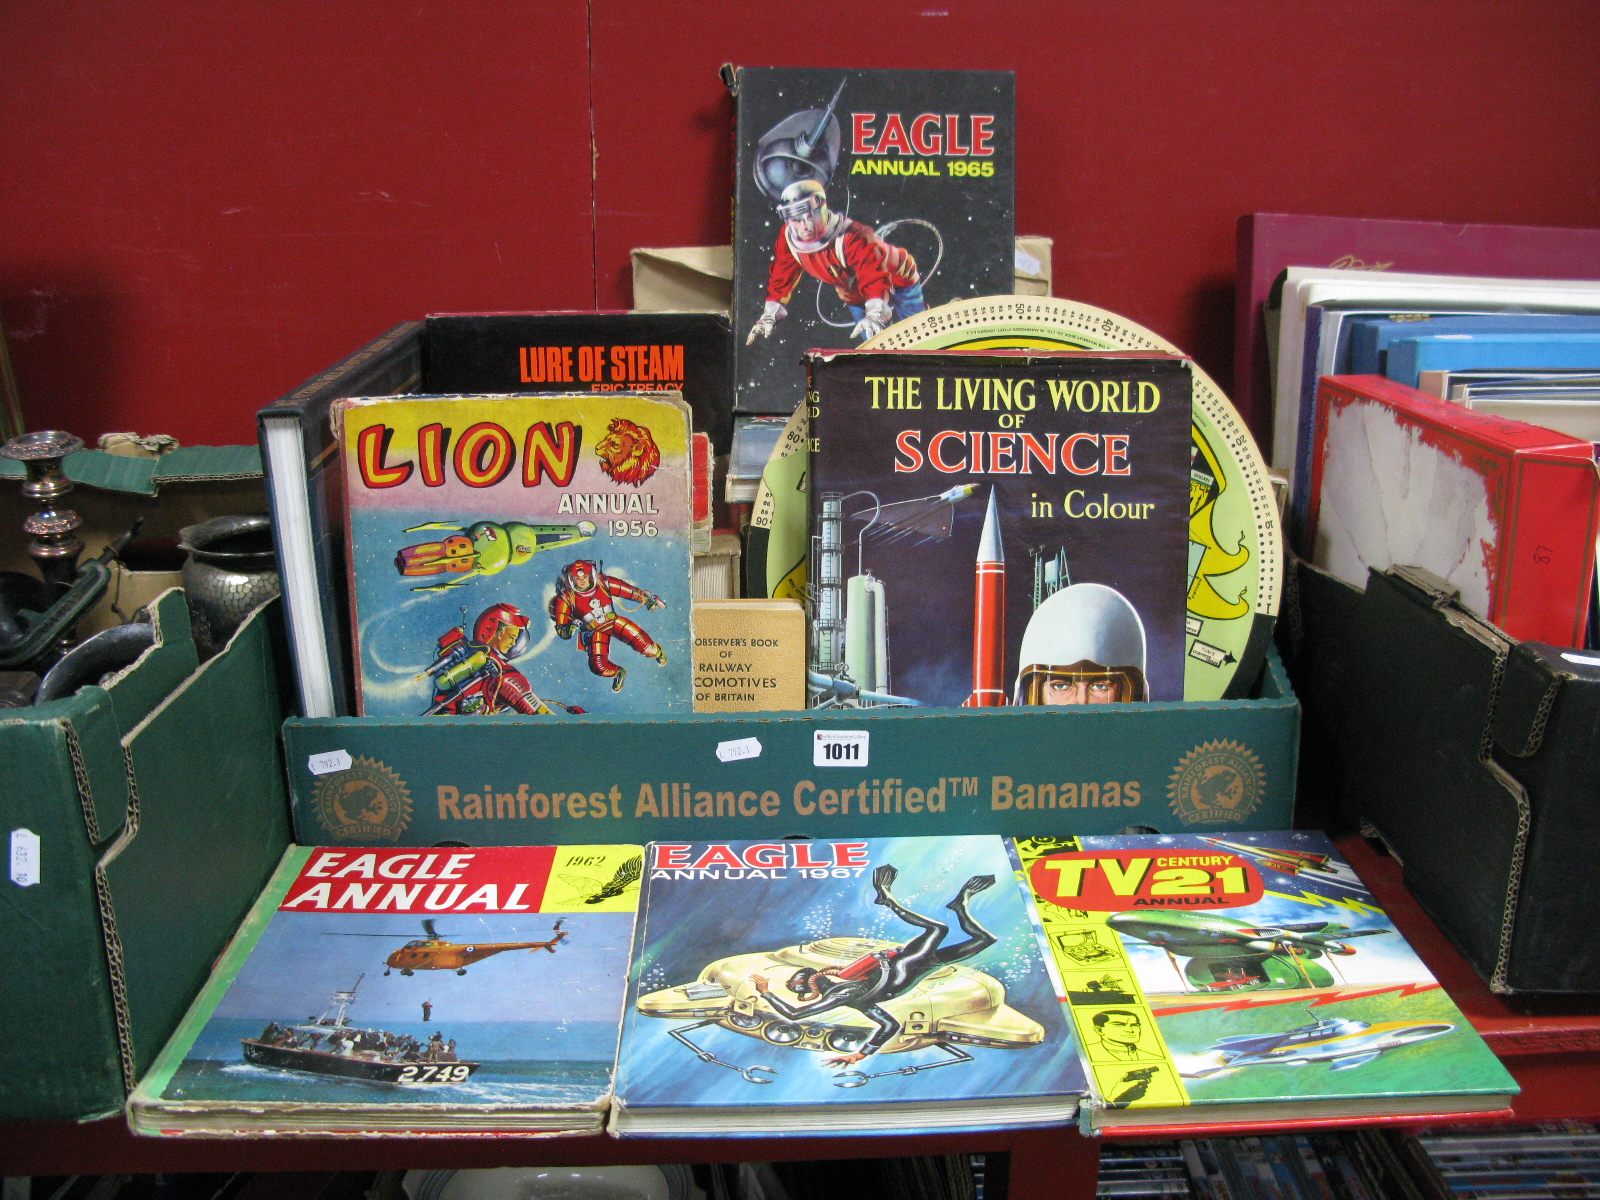 Lot 1011 - Children's Annuals, to include Eagle No. 3 1965, 66, 670 Lion (1956), TV 21 etc, Living Science,